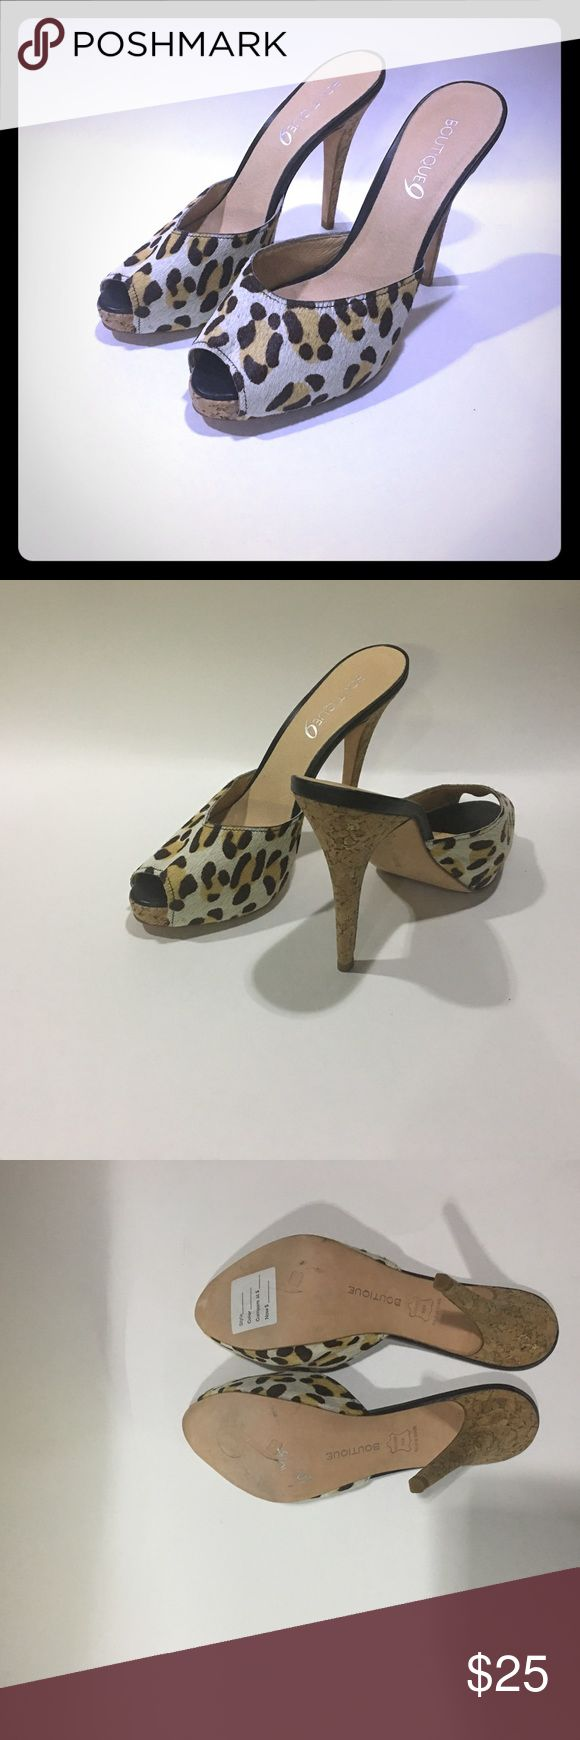 Boutique 9 Pony Hair Animal Print Heeled Sandals This is a pre-owned pair of Boutique 9 size 10 heeled sandals.  The sandals have a cheetah animal print design that has a fur like texture and the heel is made of cork.  Leather sole.  Made in Brazil. Boutique 9 Shoes Heels